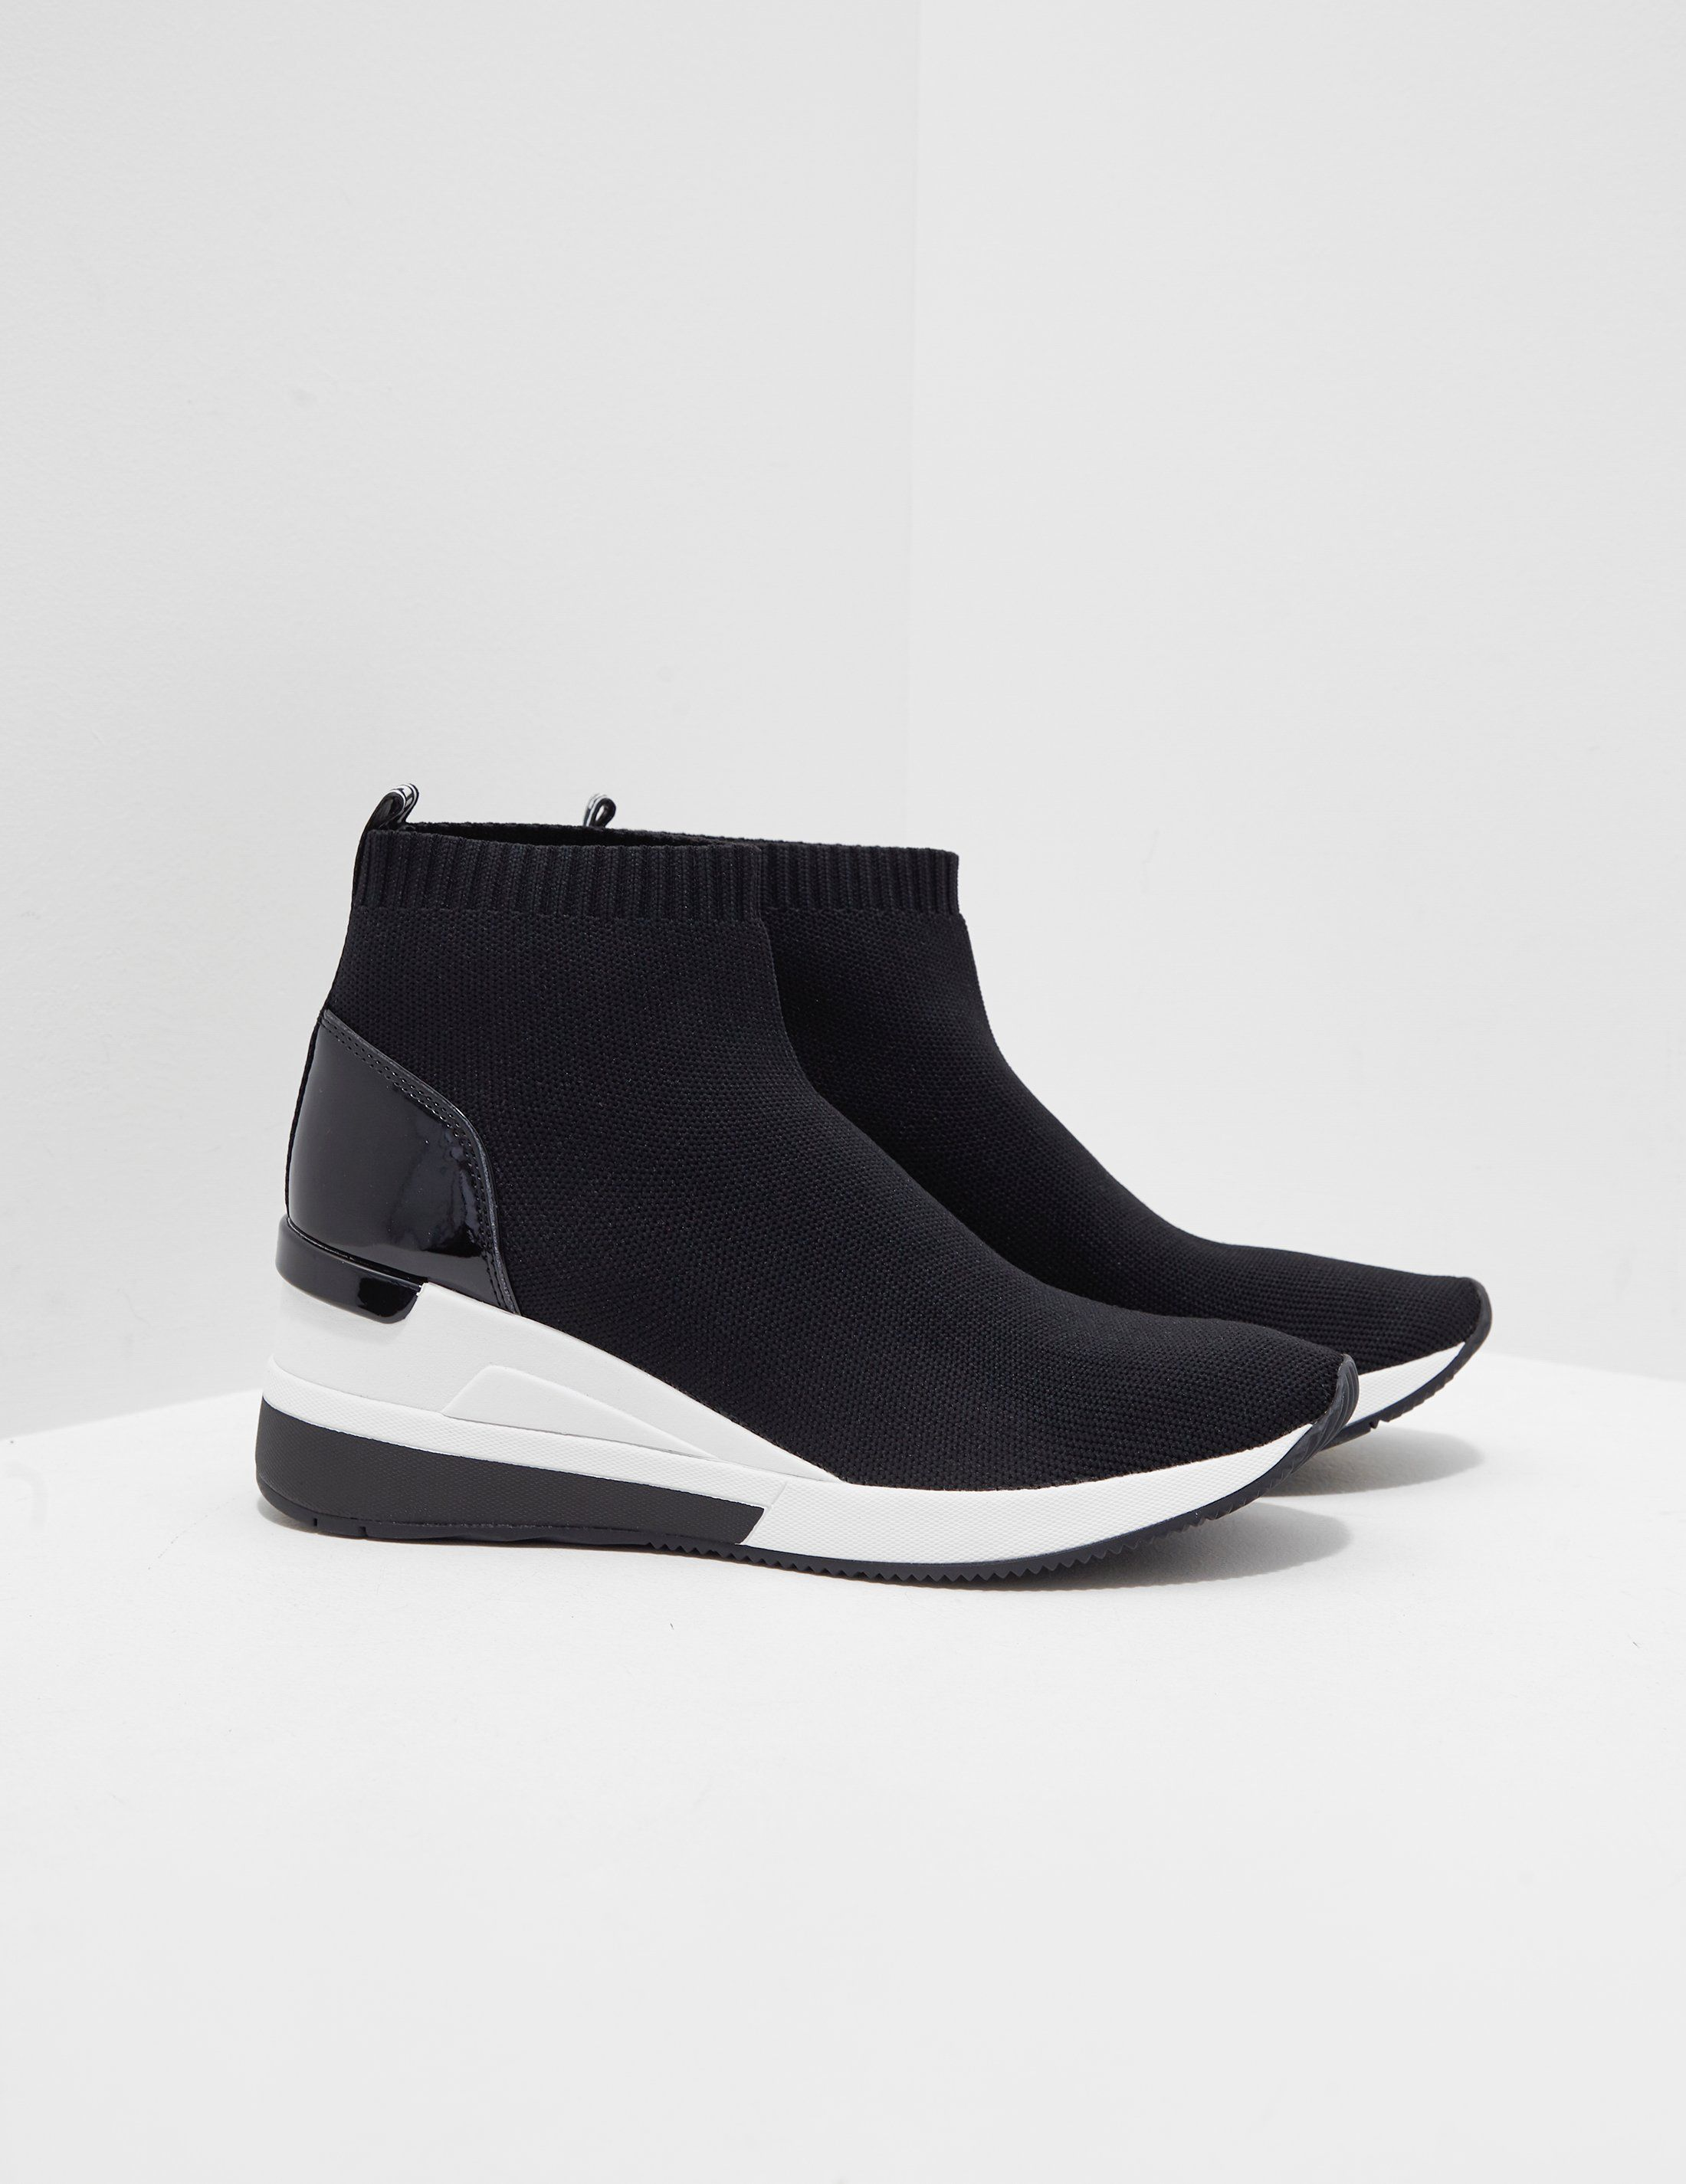 Michael Kors Skyler Boot Trainers - Online Exclusive